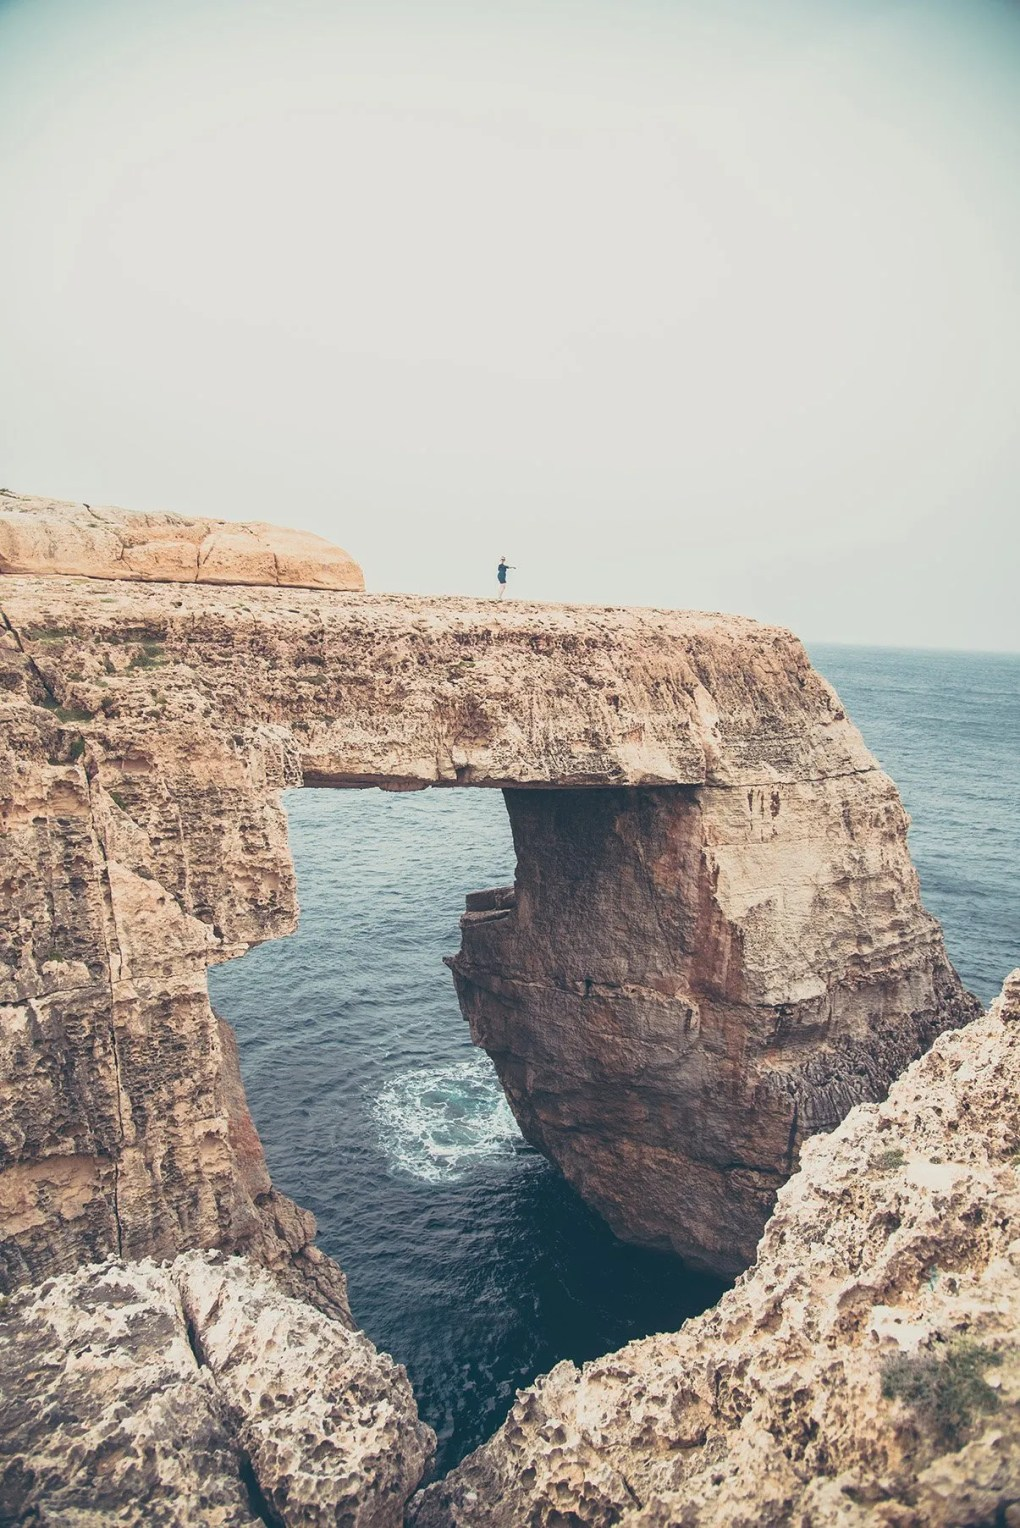 Photo guide to the most photogenic spots in Gozo | Malta